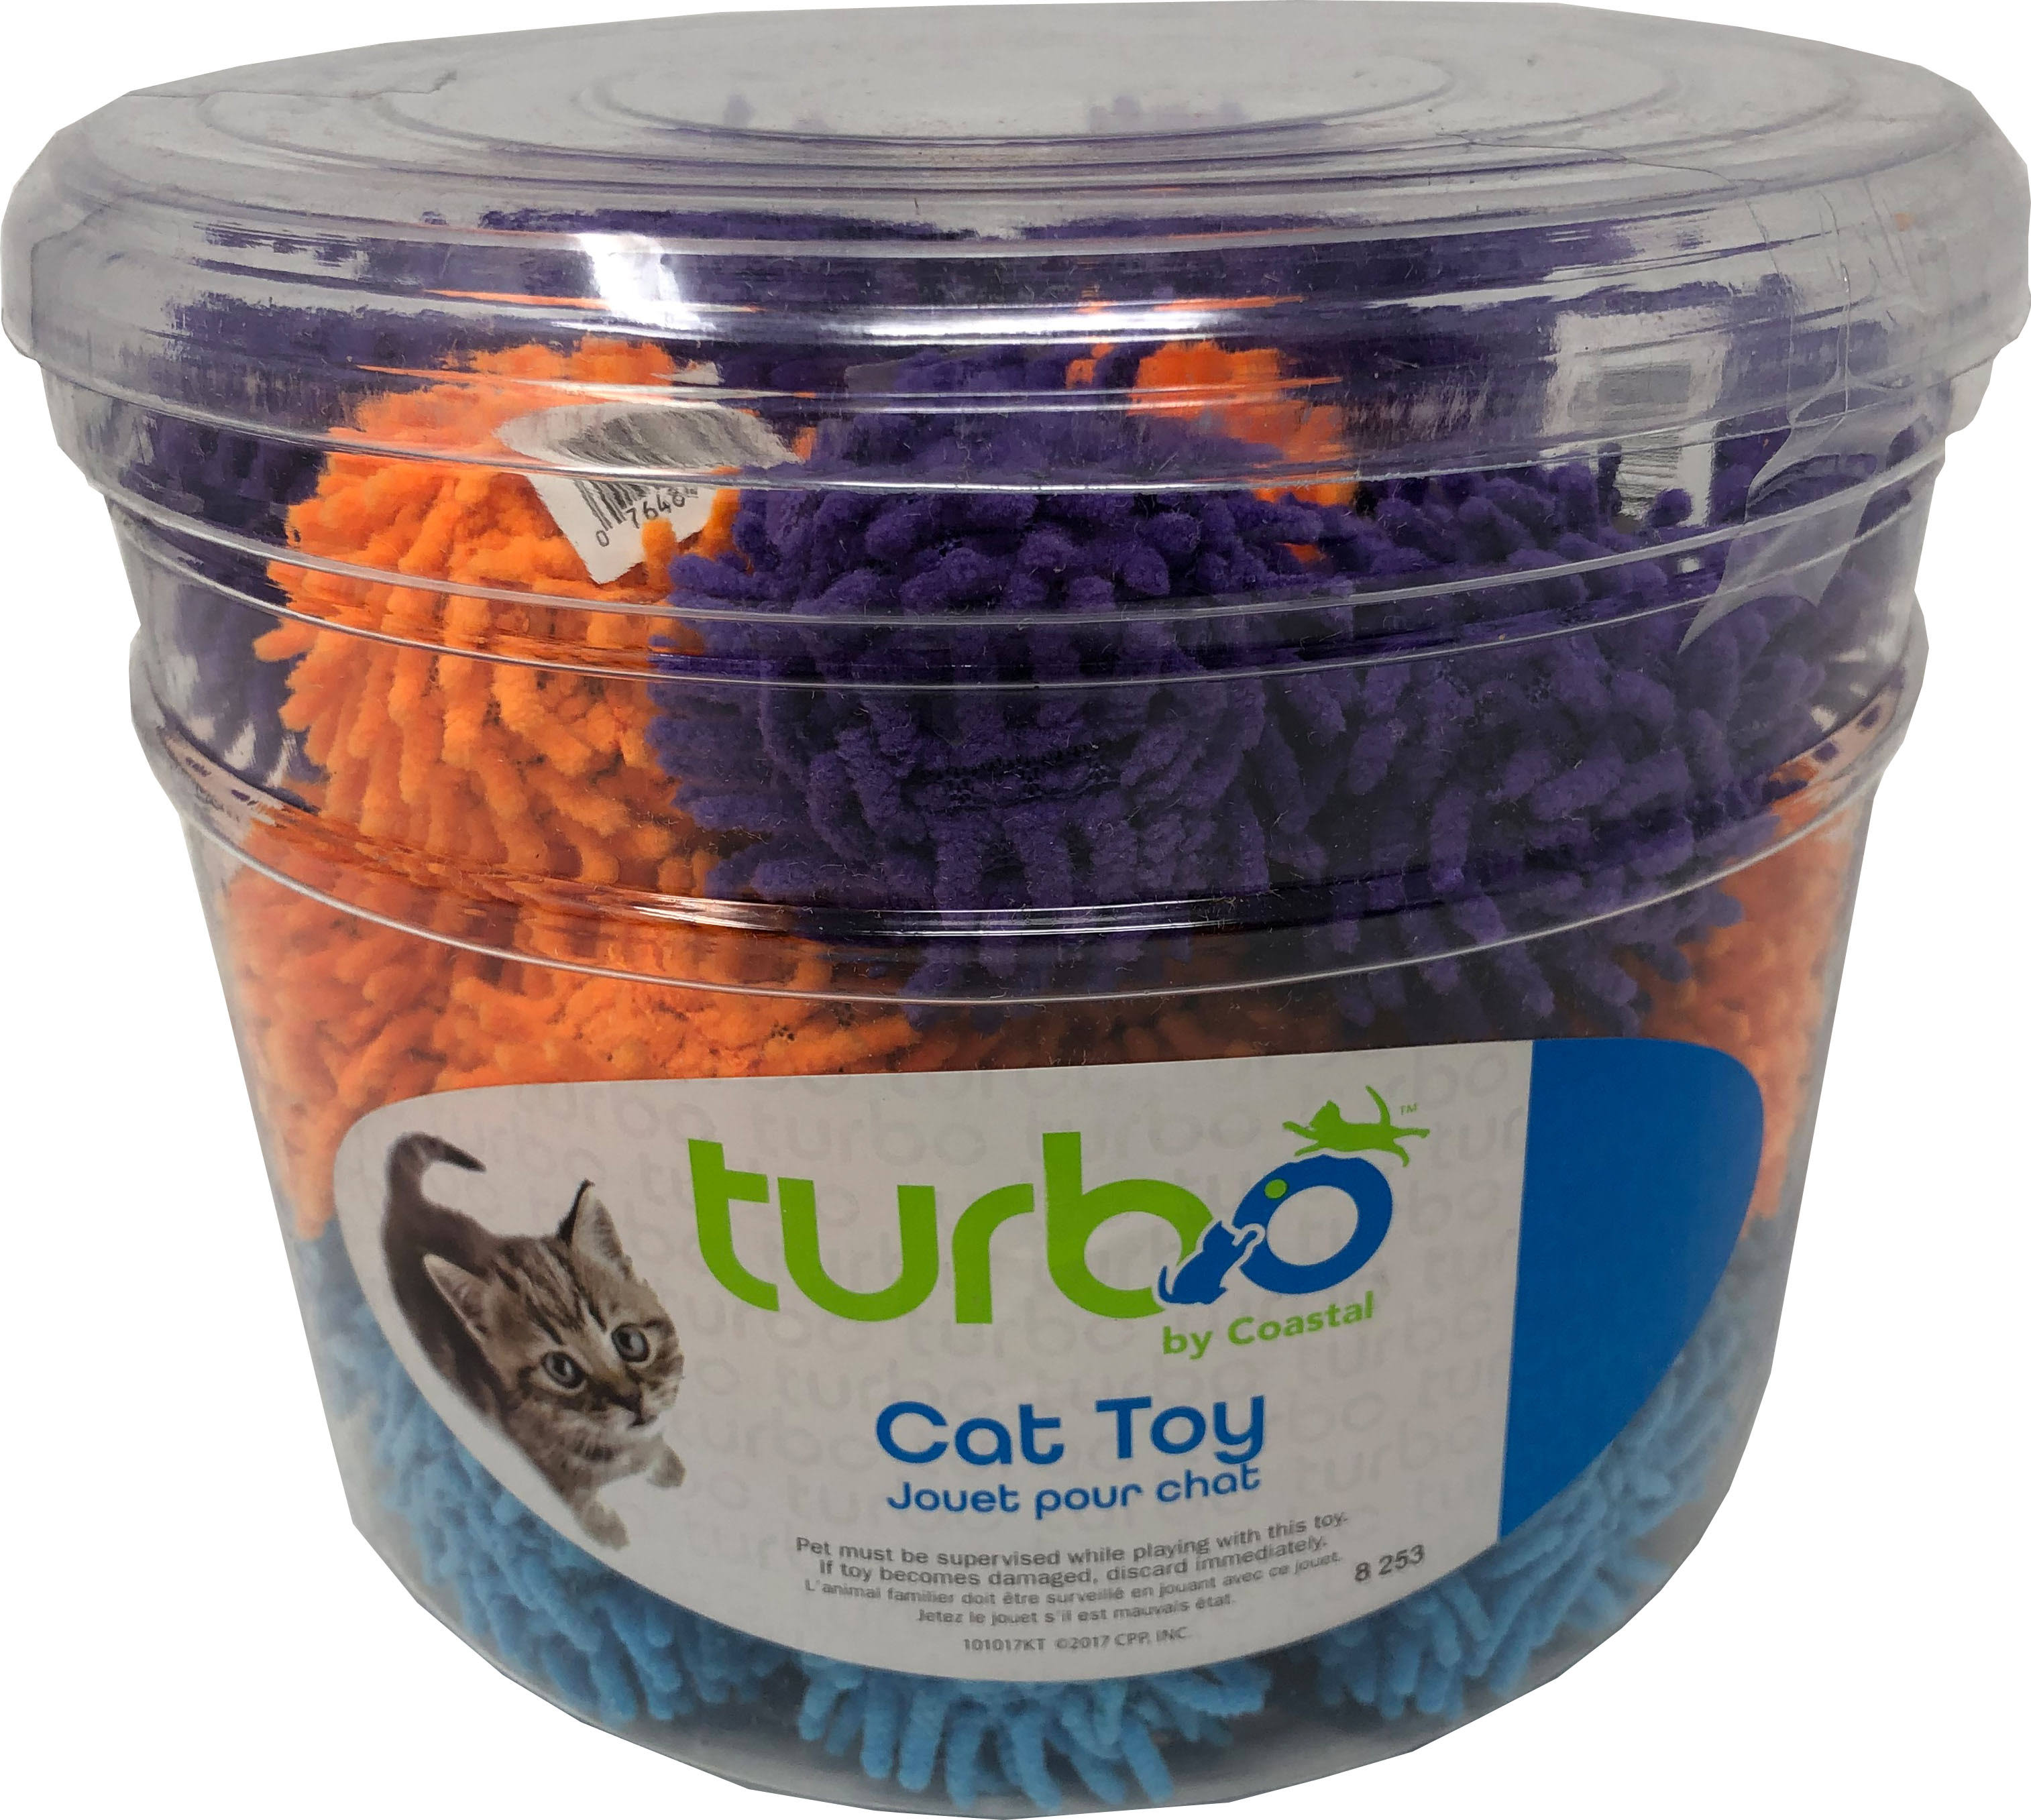 Coastal Pet Products 80533 NCLCAT Turbo Mop Balls Cat Toy Canister - Multicolor 36 Piece - Pack of 8